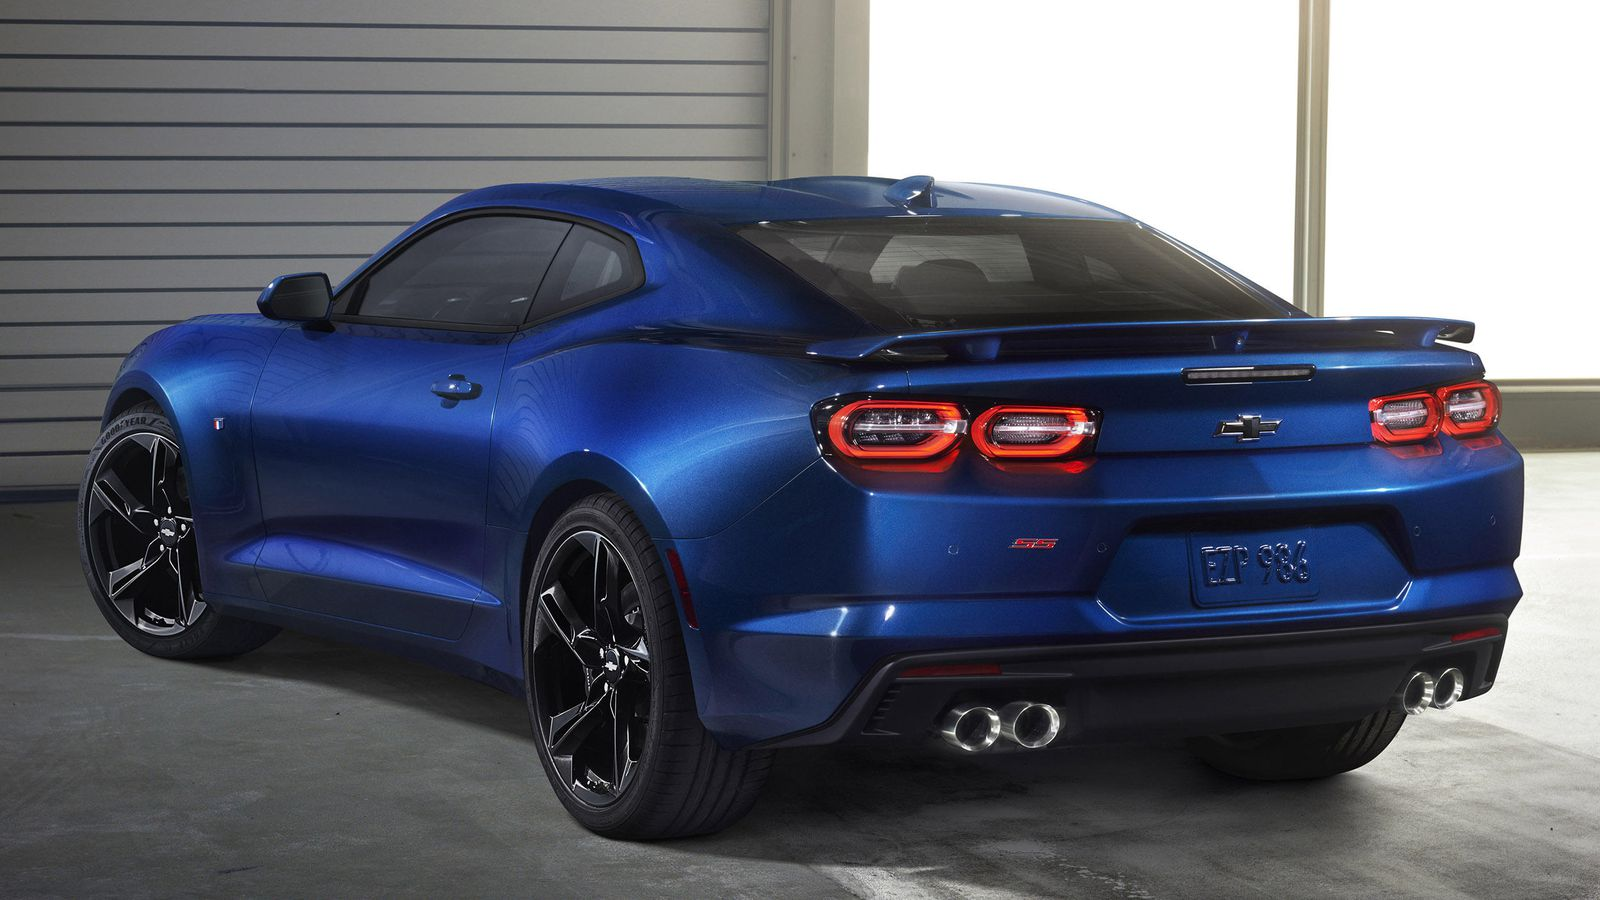 55 New 2019 Camaro Ss Pictures